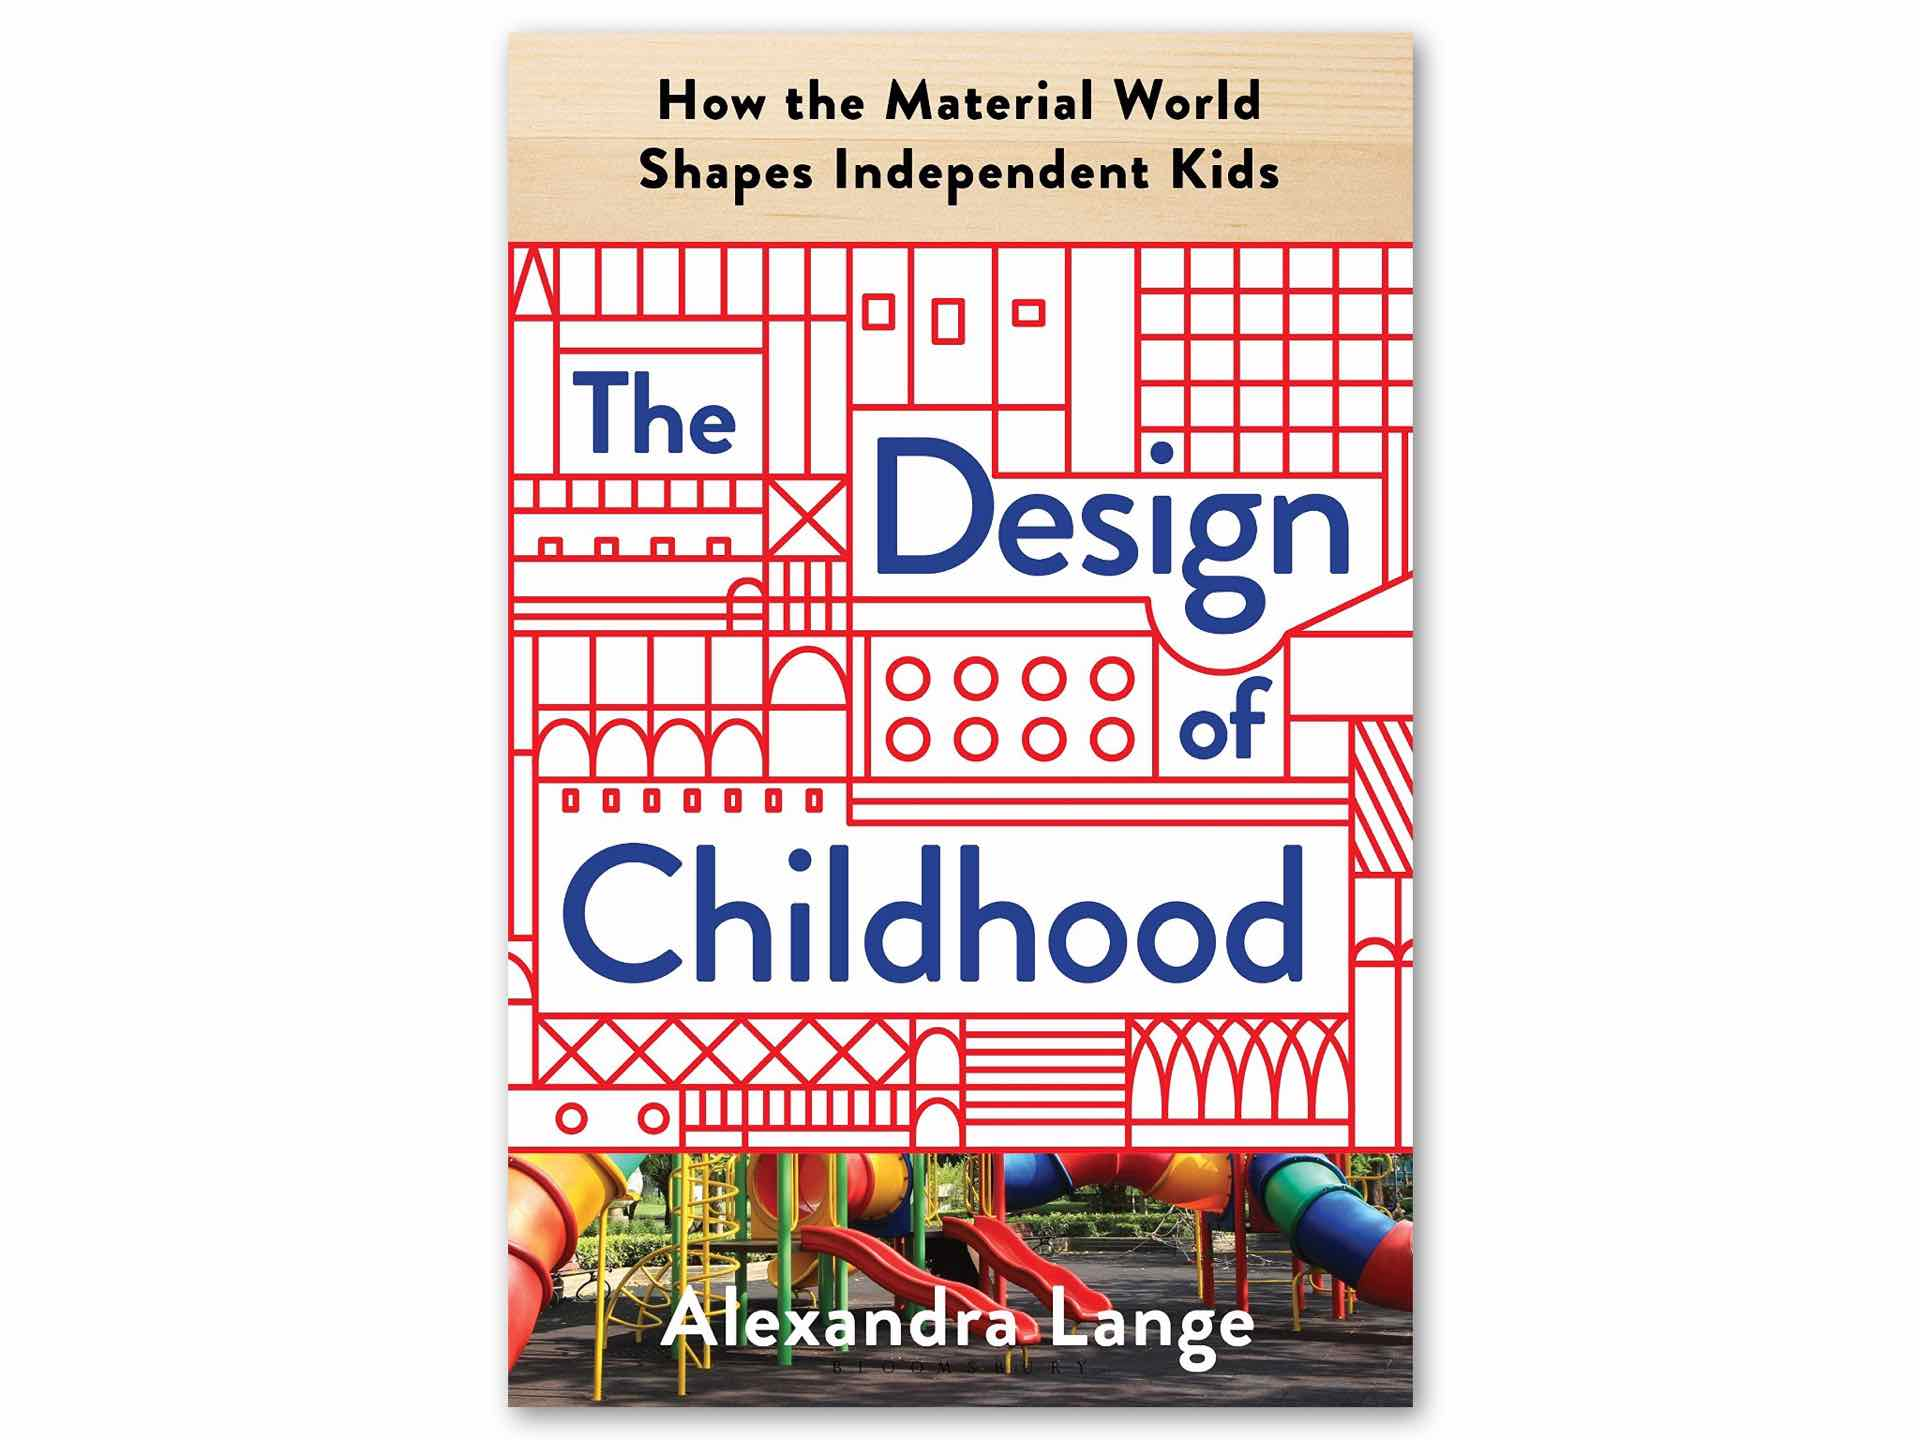 the-design-of-childhood-by-alexandra-lange